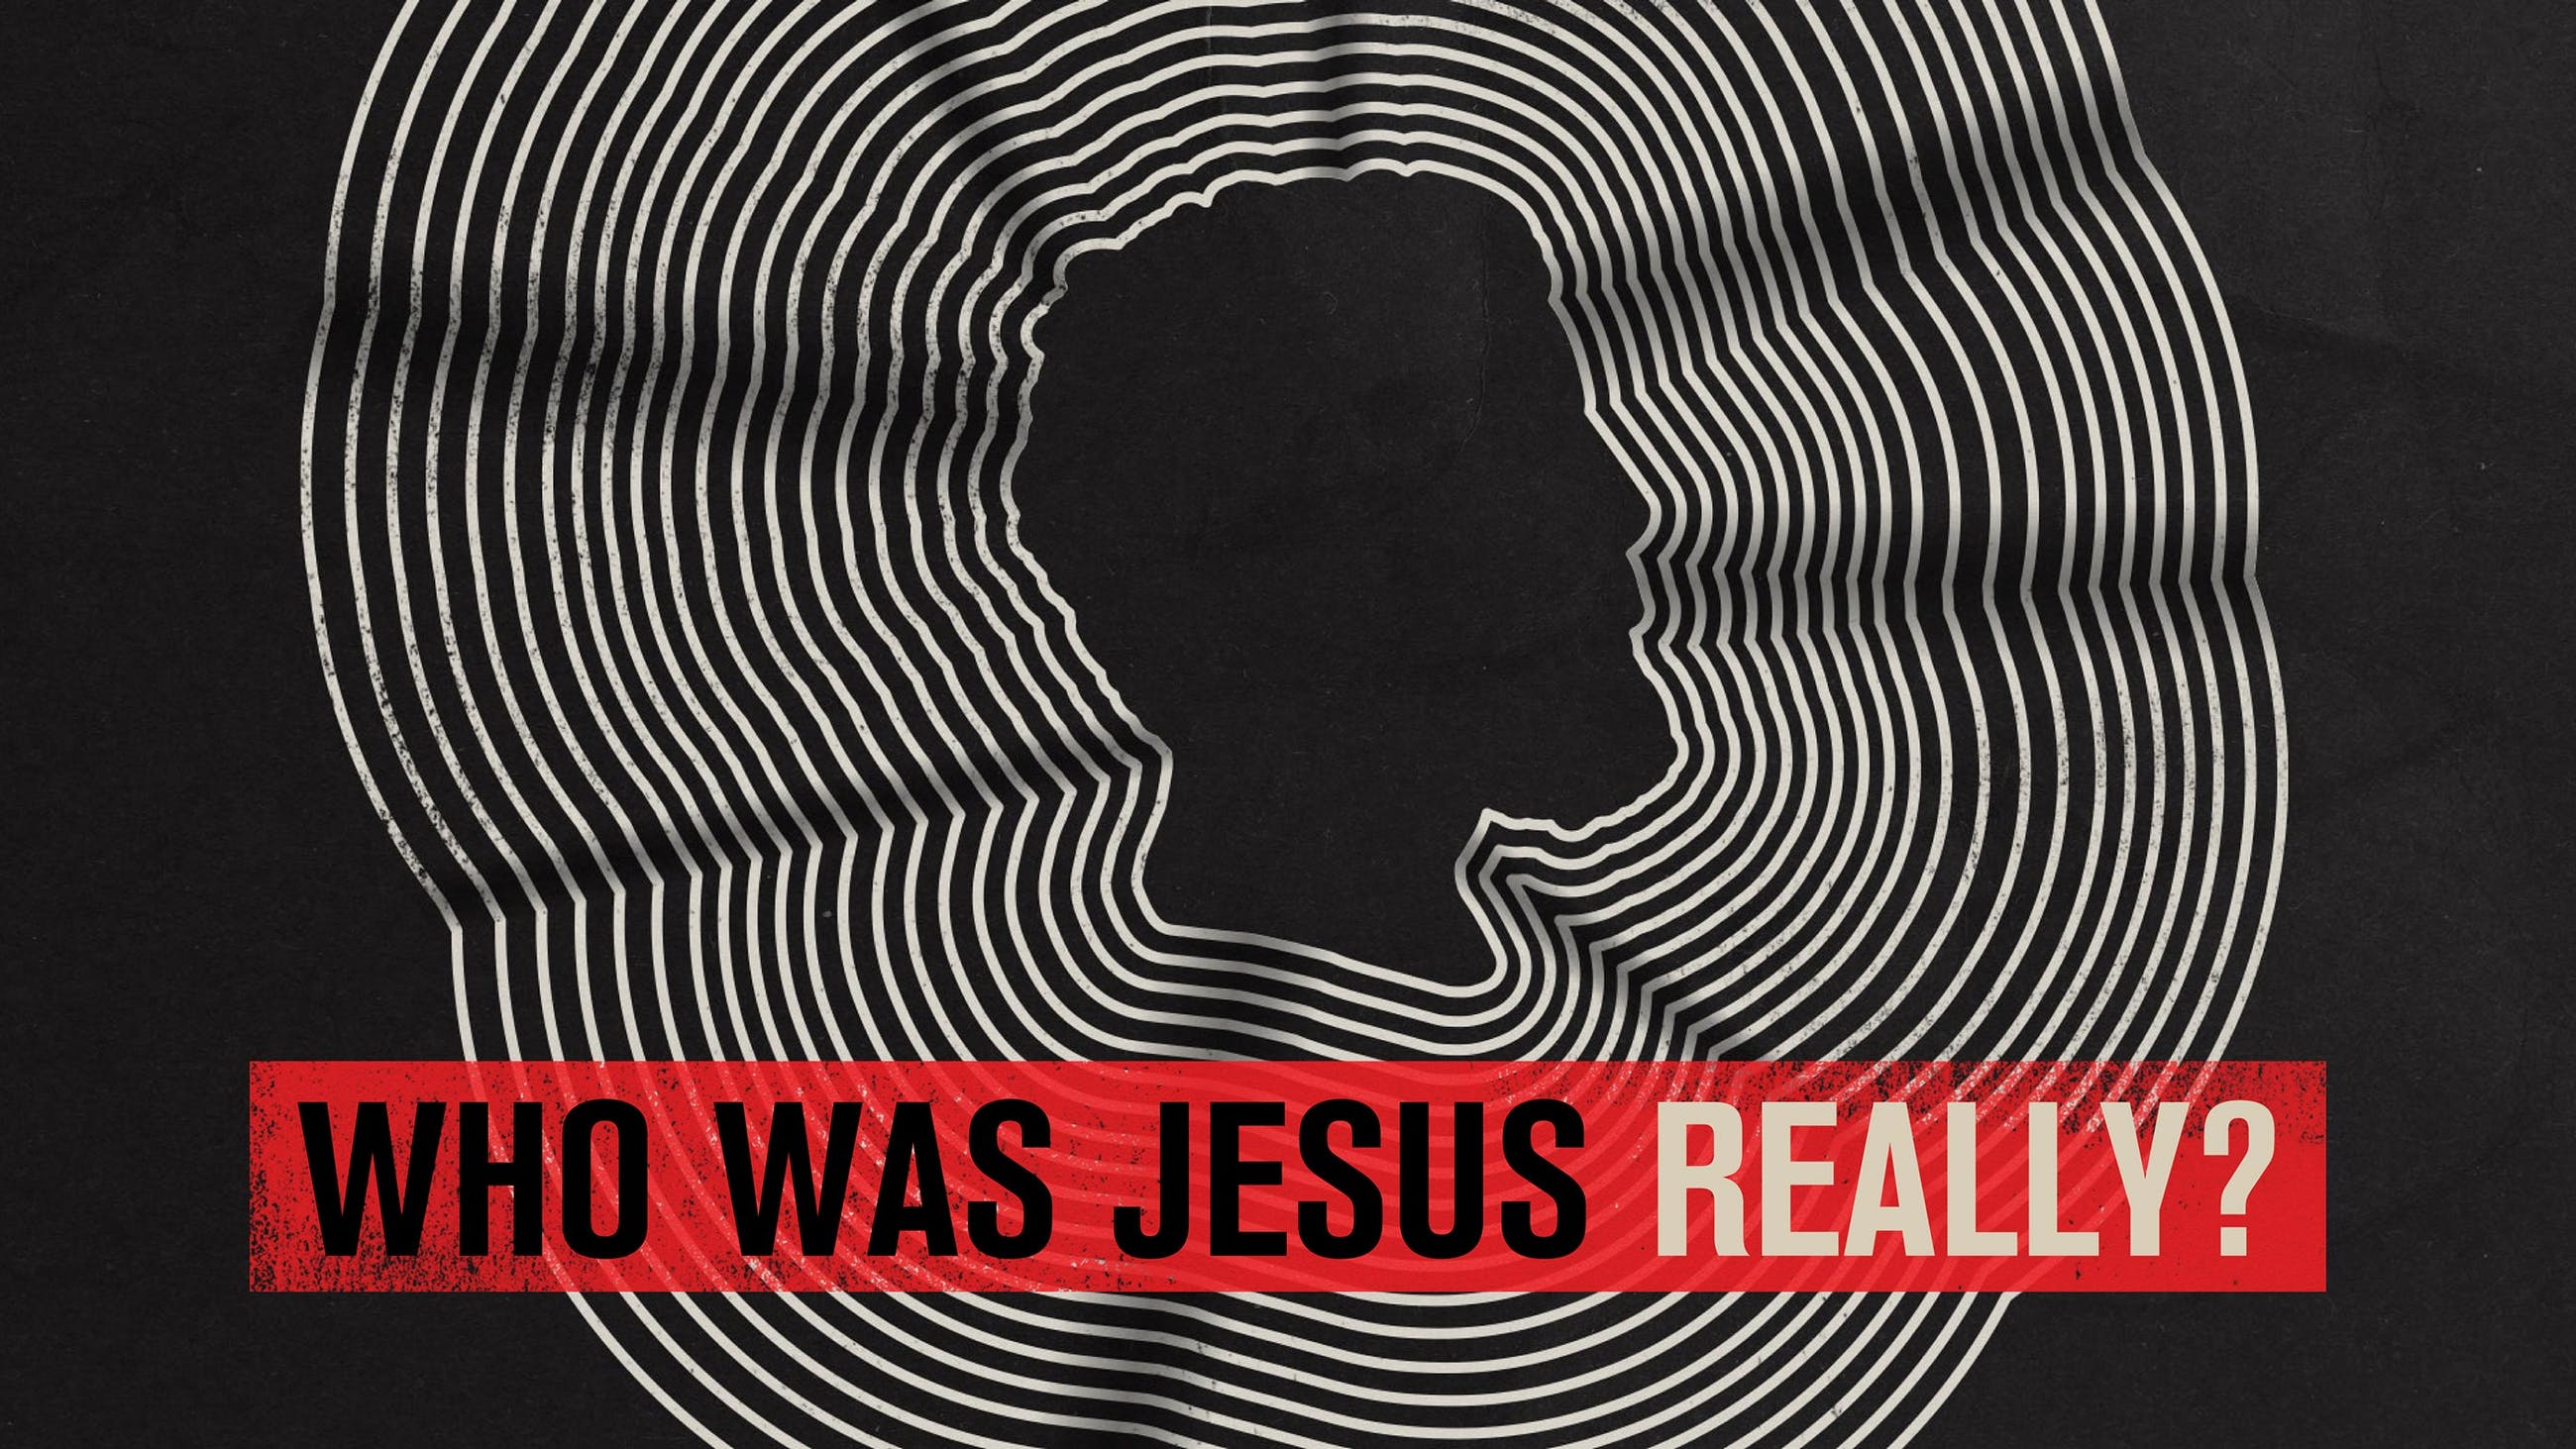 who was jesus really